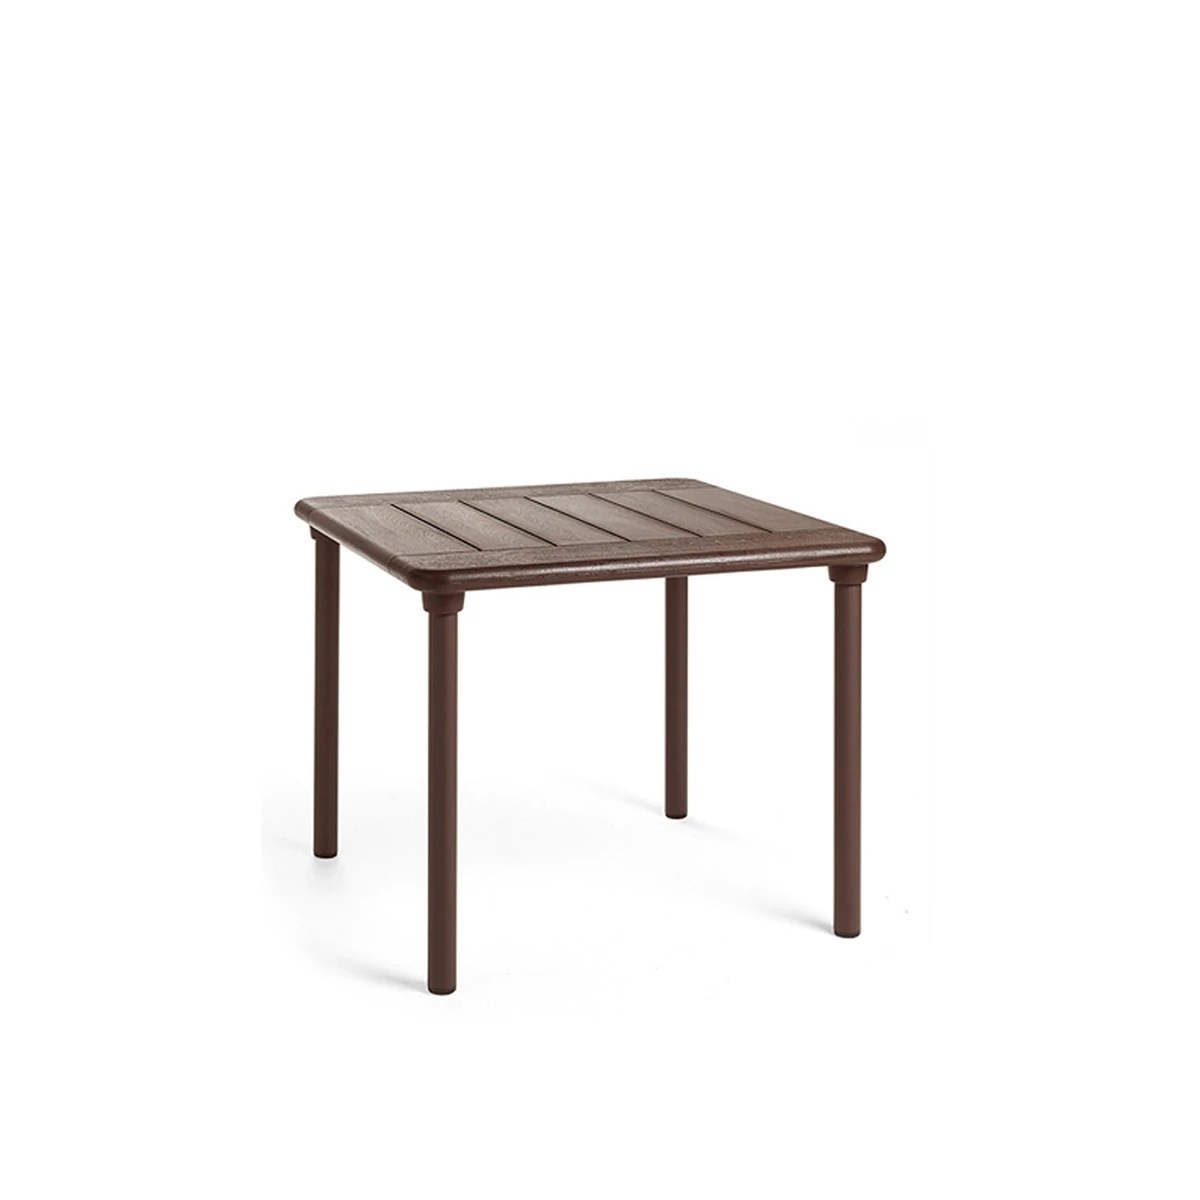 Table Appoint Jardin Table D'appoint Jardin & Terrasse Maestrale Nardi